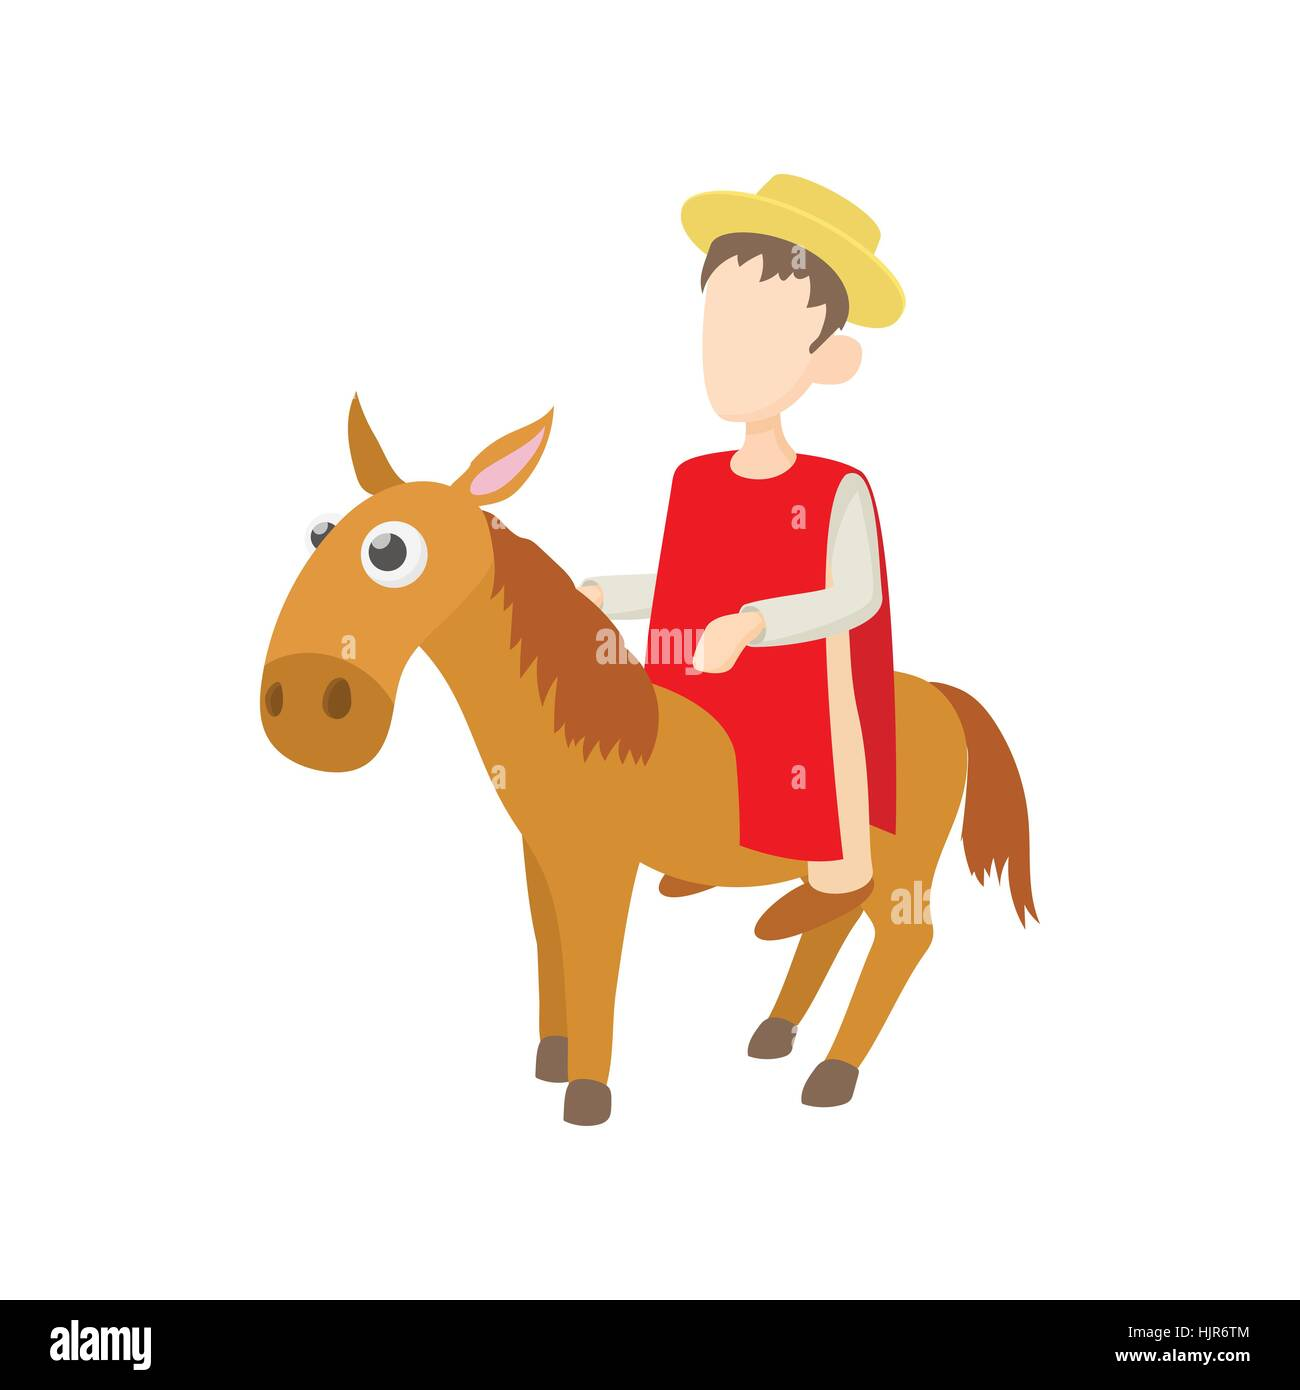 Riding Donkey Cut Out Stock Images & Pictures - Alamy